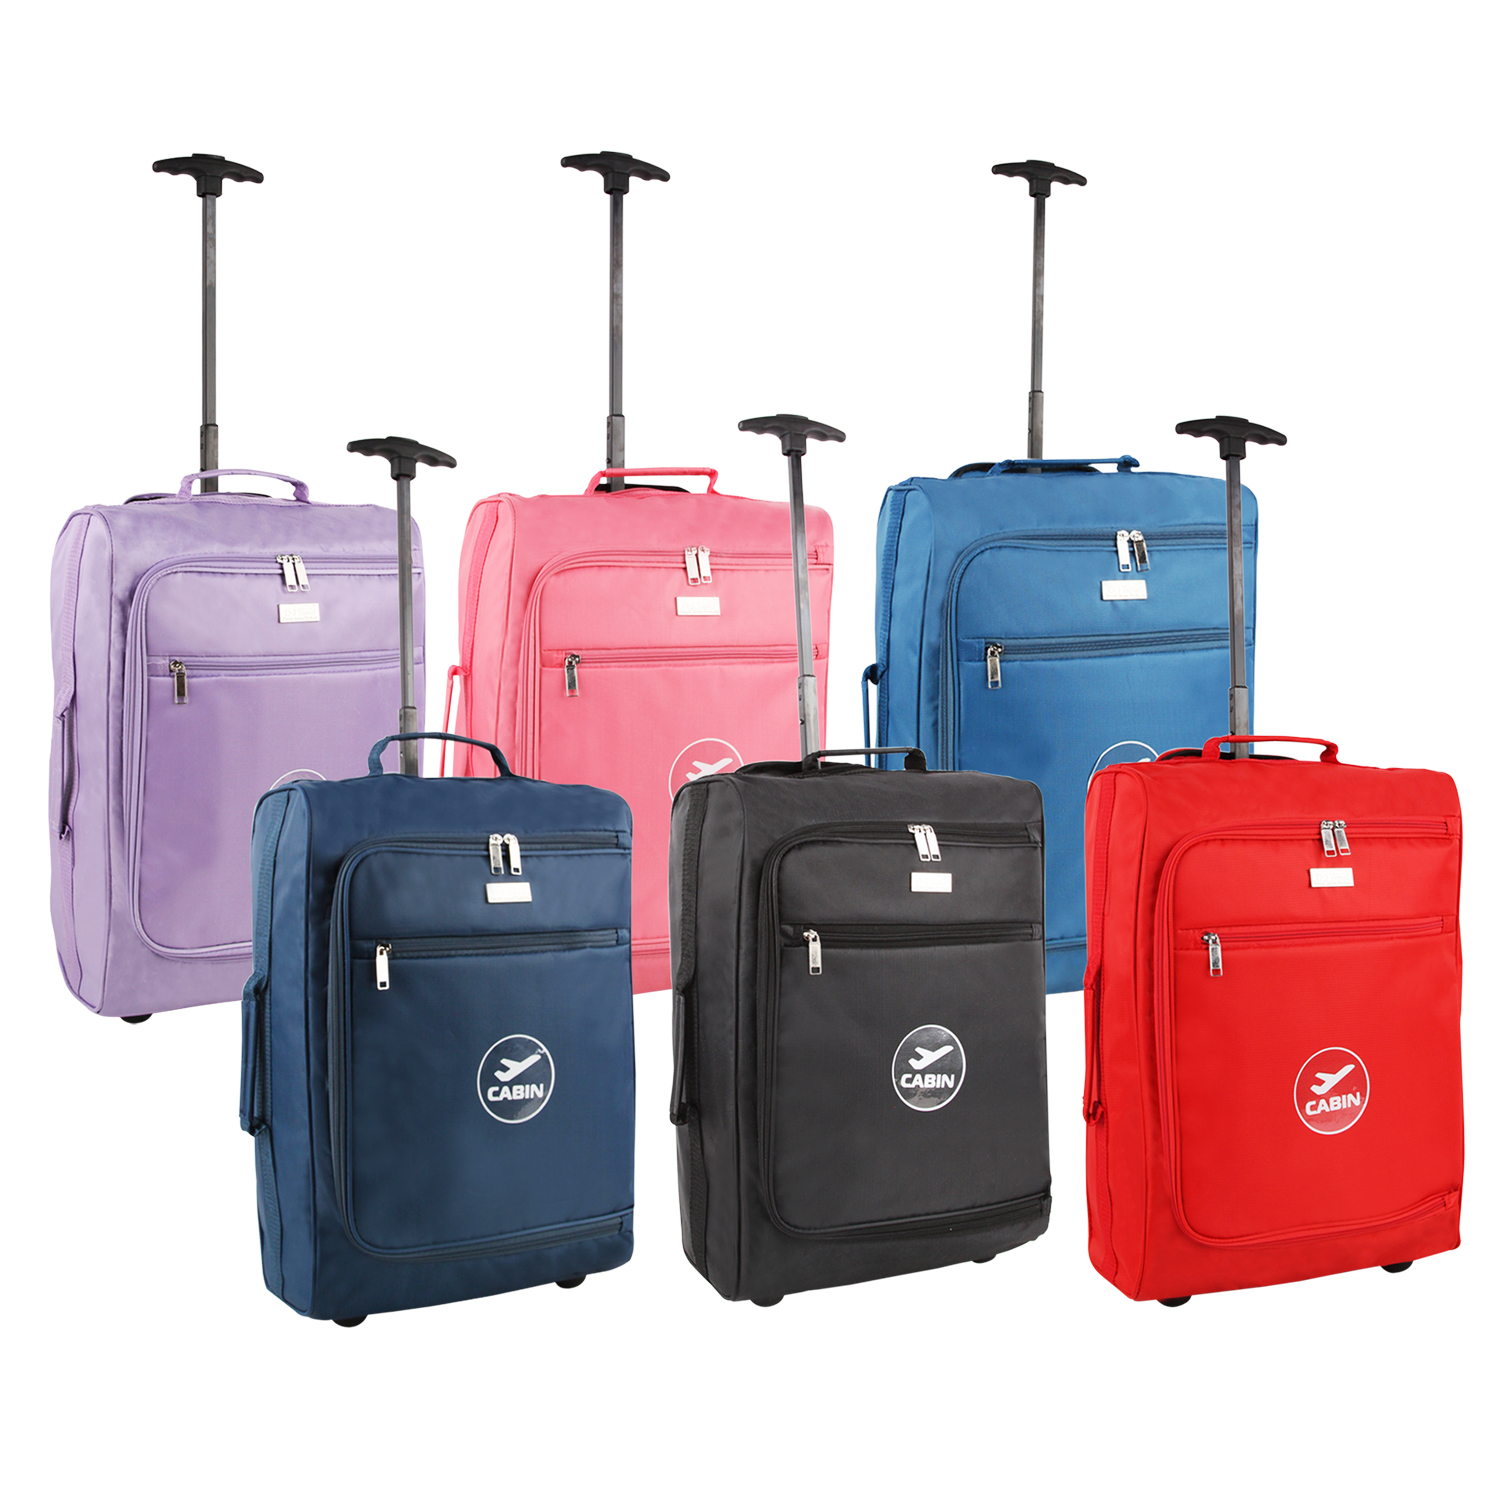 0644994eb Details about Lightweight Cabin Case Hand Luggage Travel Bag Wheels Handle  Airline Approved